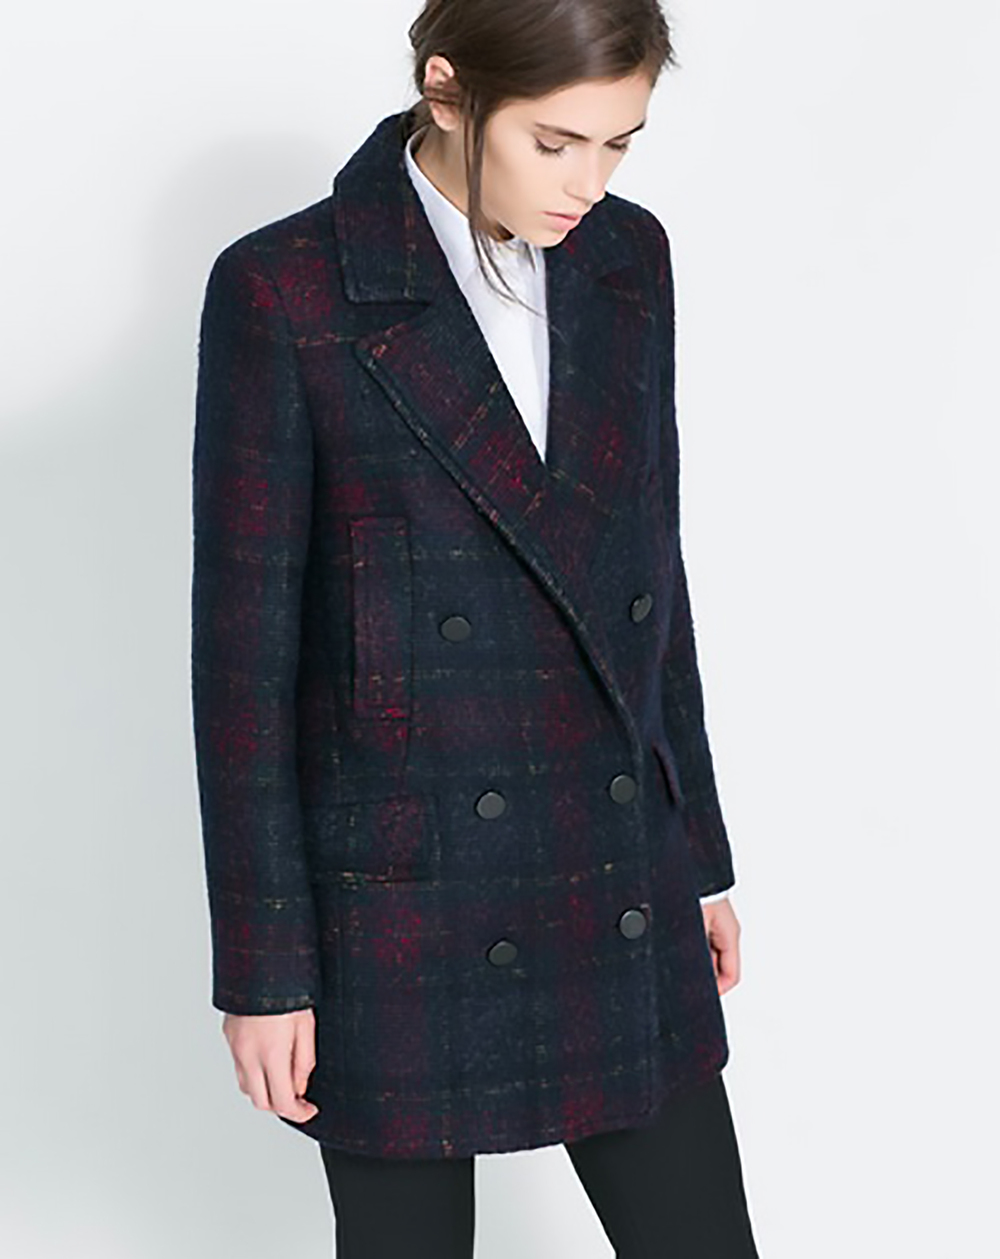 zara checked coat with pockets mad for plaid 1500.jpg